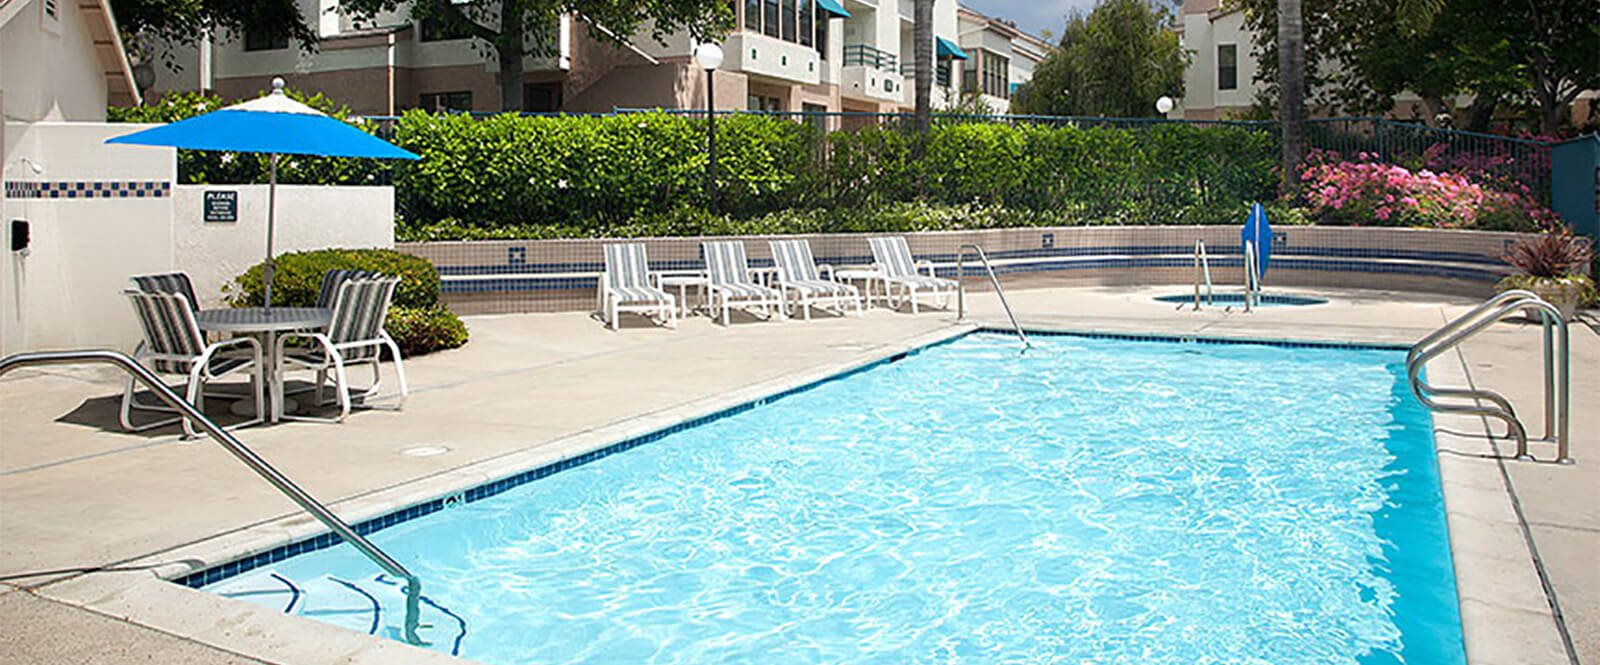 The Heated Salt-Water Pool Is Open Year-Round at Cypress Meadows Senior Apartments, Ventura, CA